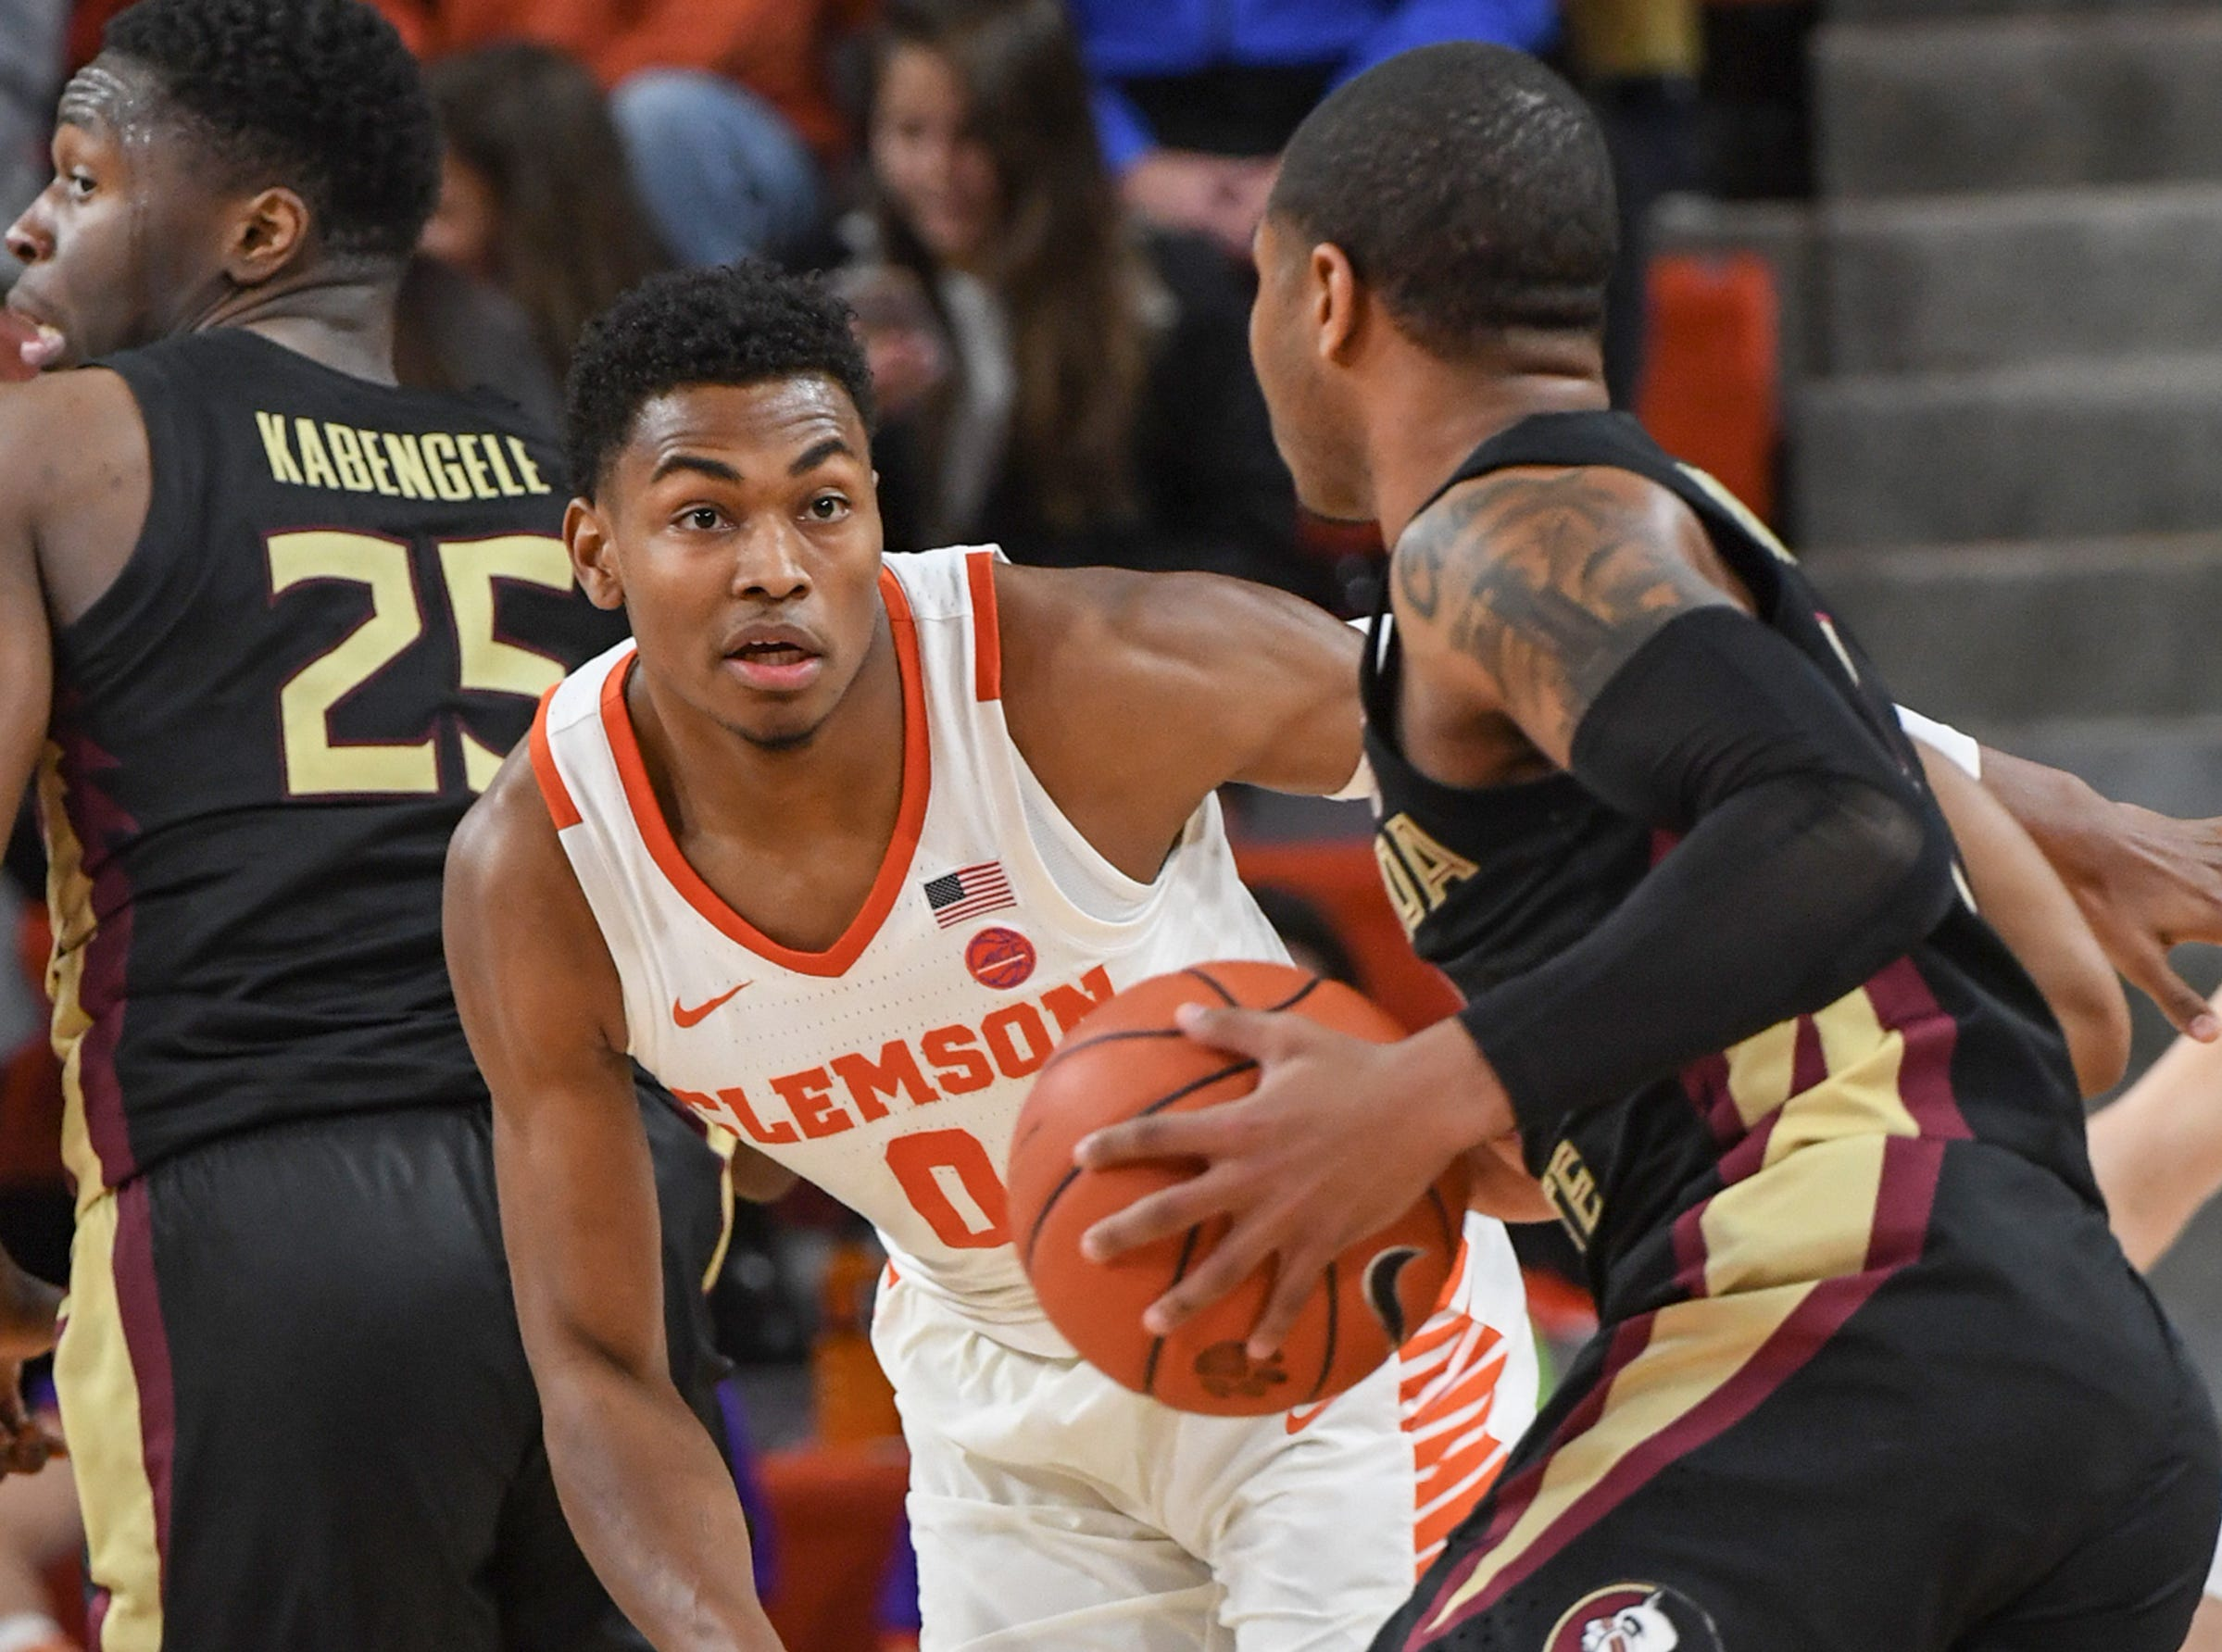 Clemson center Clyde Trapp (0) plays defense against Florida State during the second half at Littlejohn Coliseum in Clemson Tuesday, February 19, 2019.